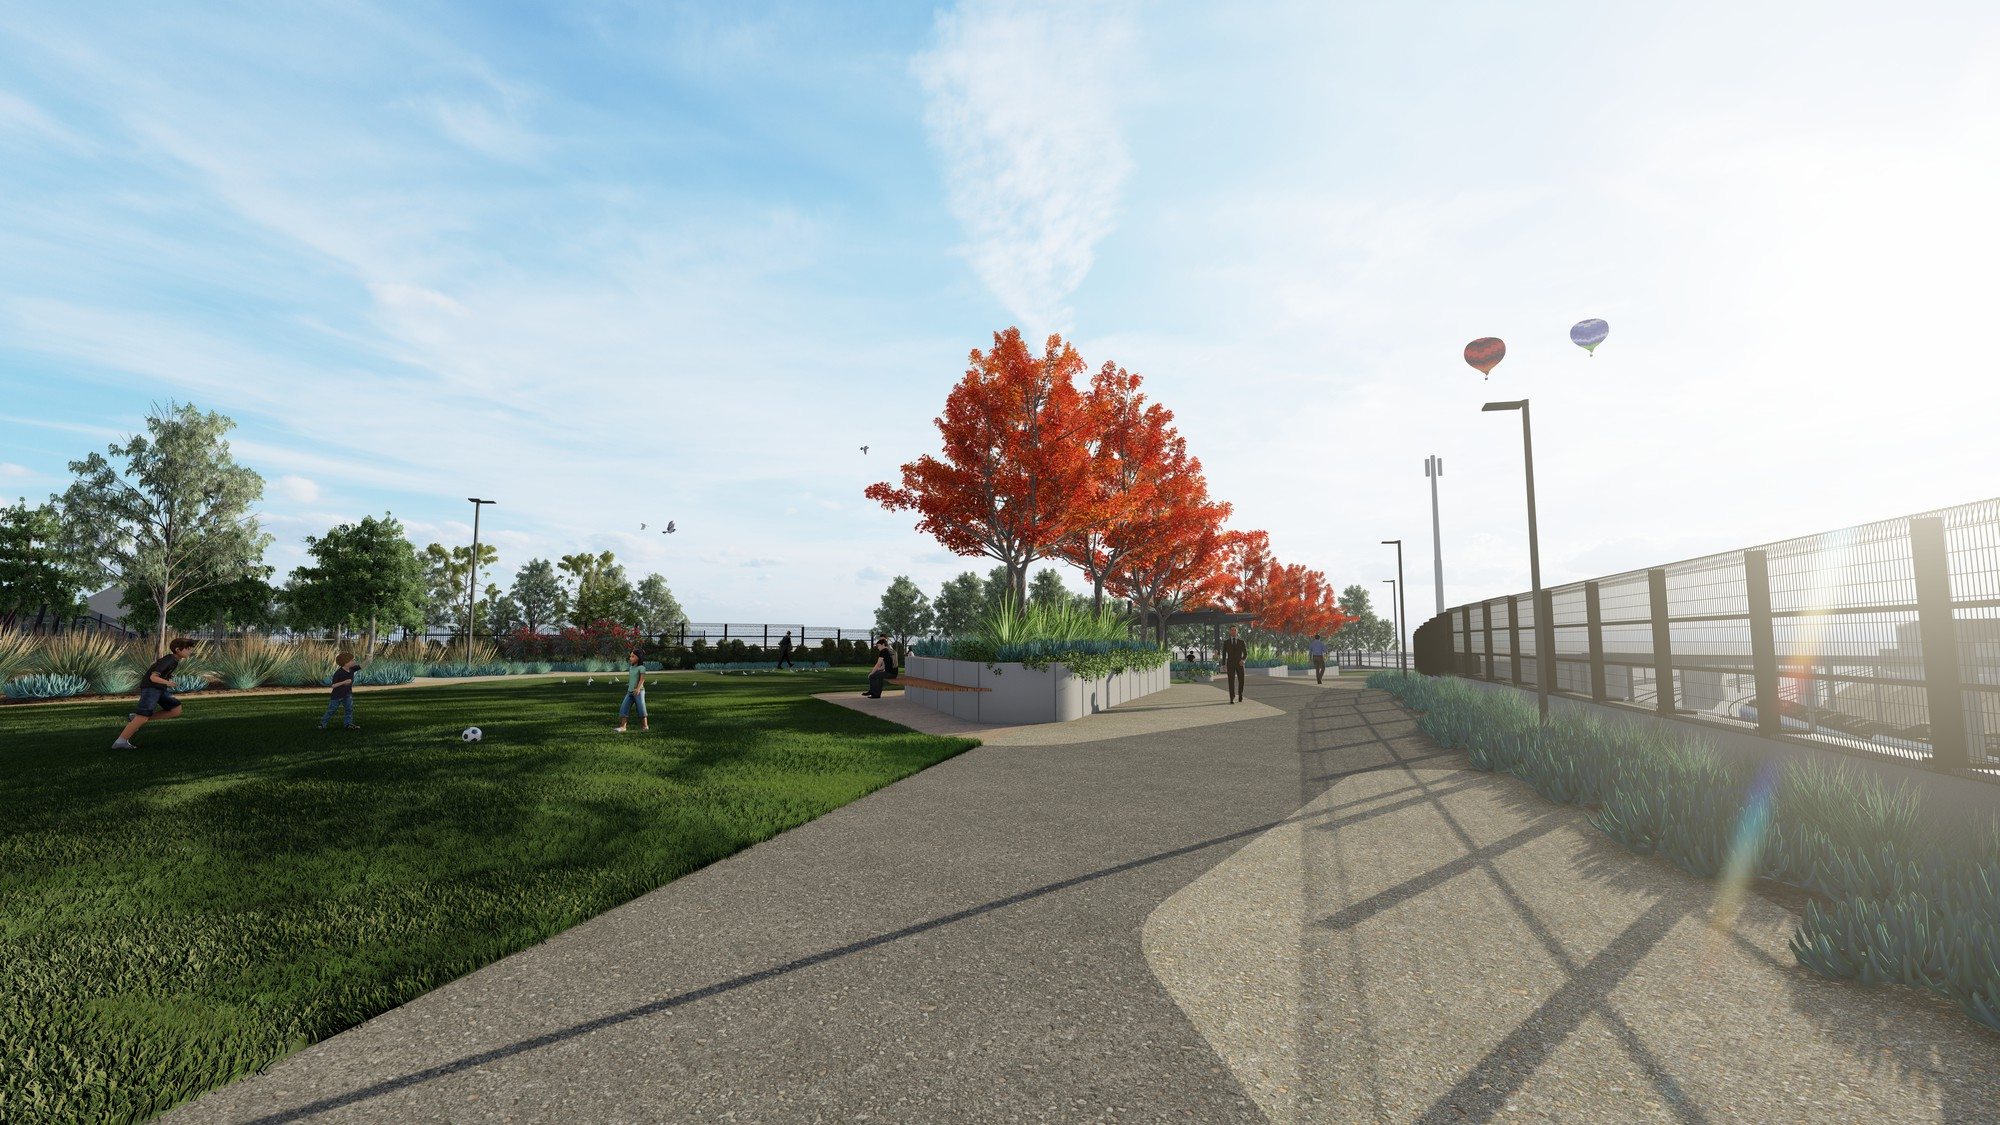 Call for First Nations artists to create public artwork